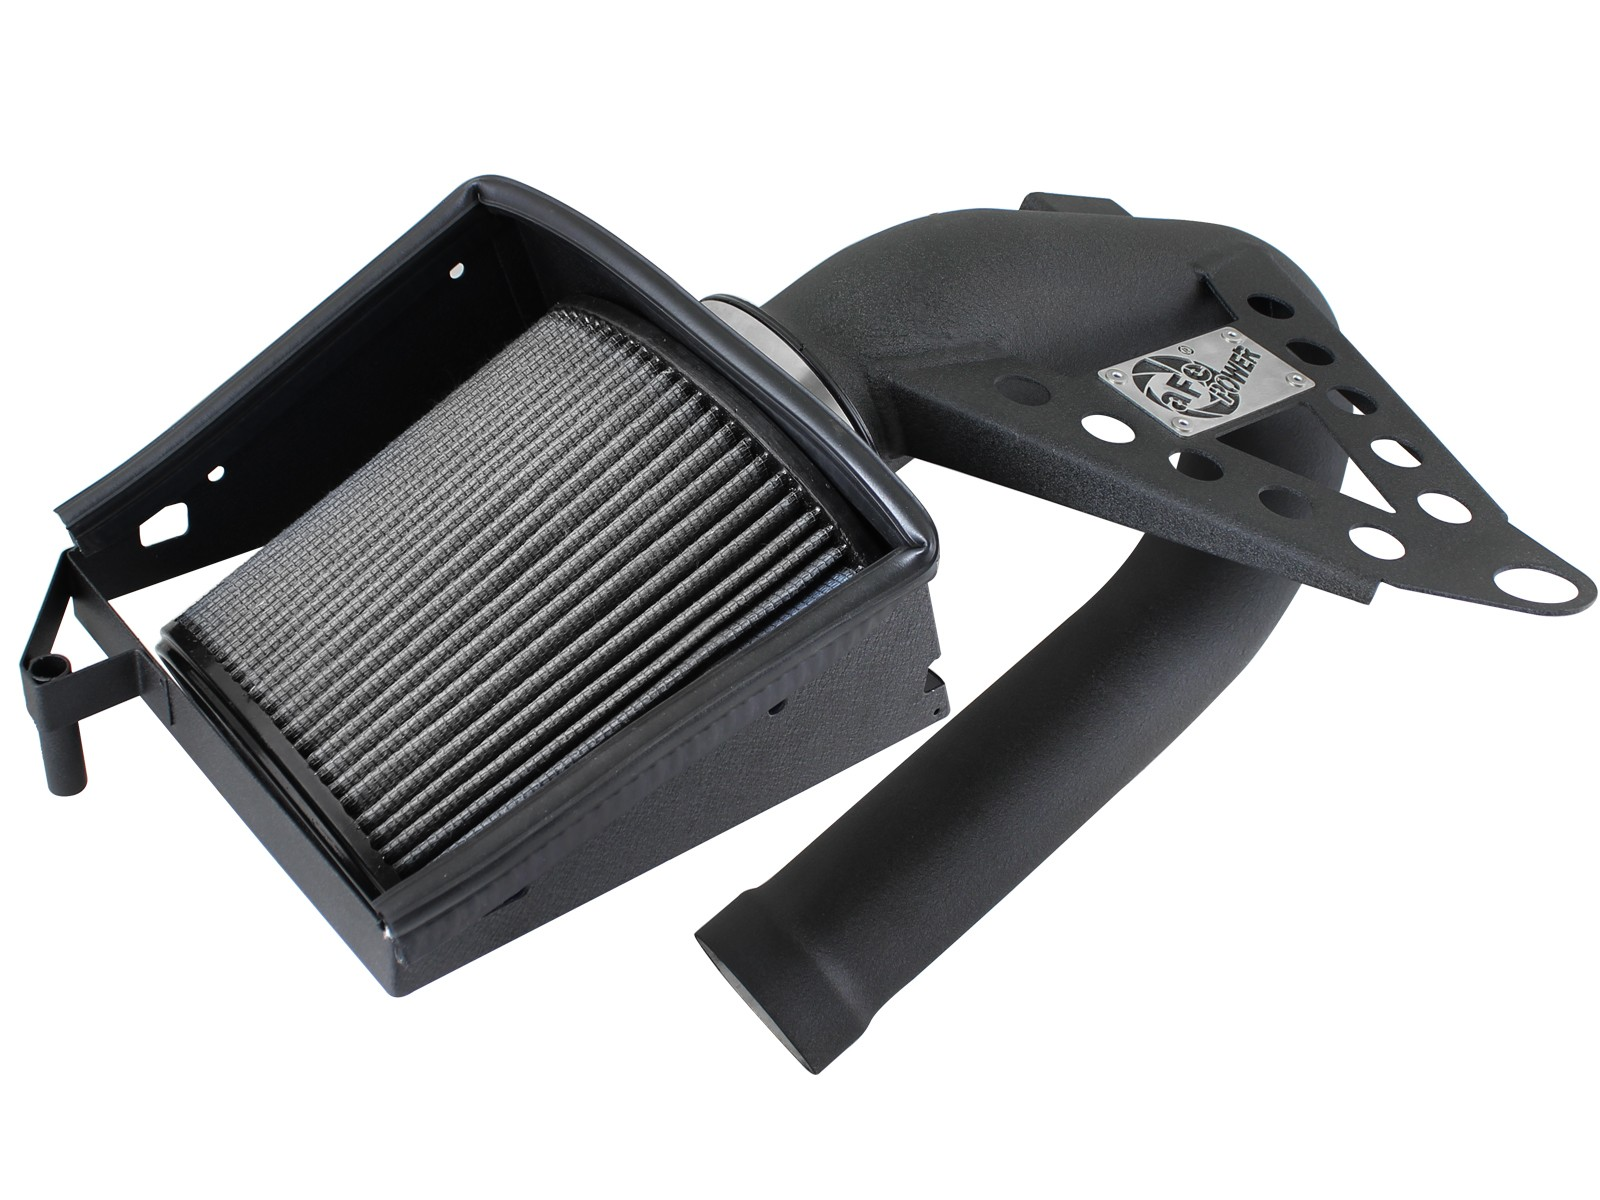 aFe POWER 51-12212 Magnum FORCE Stage-2 Pro DRY S Cold Air Intake System